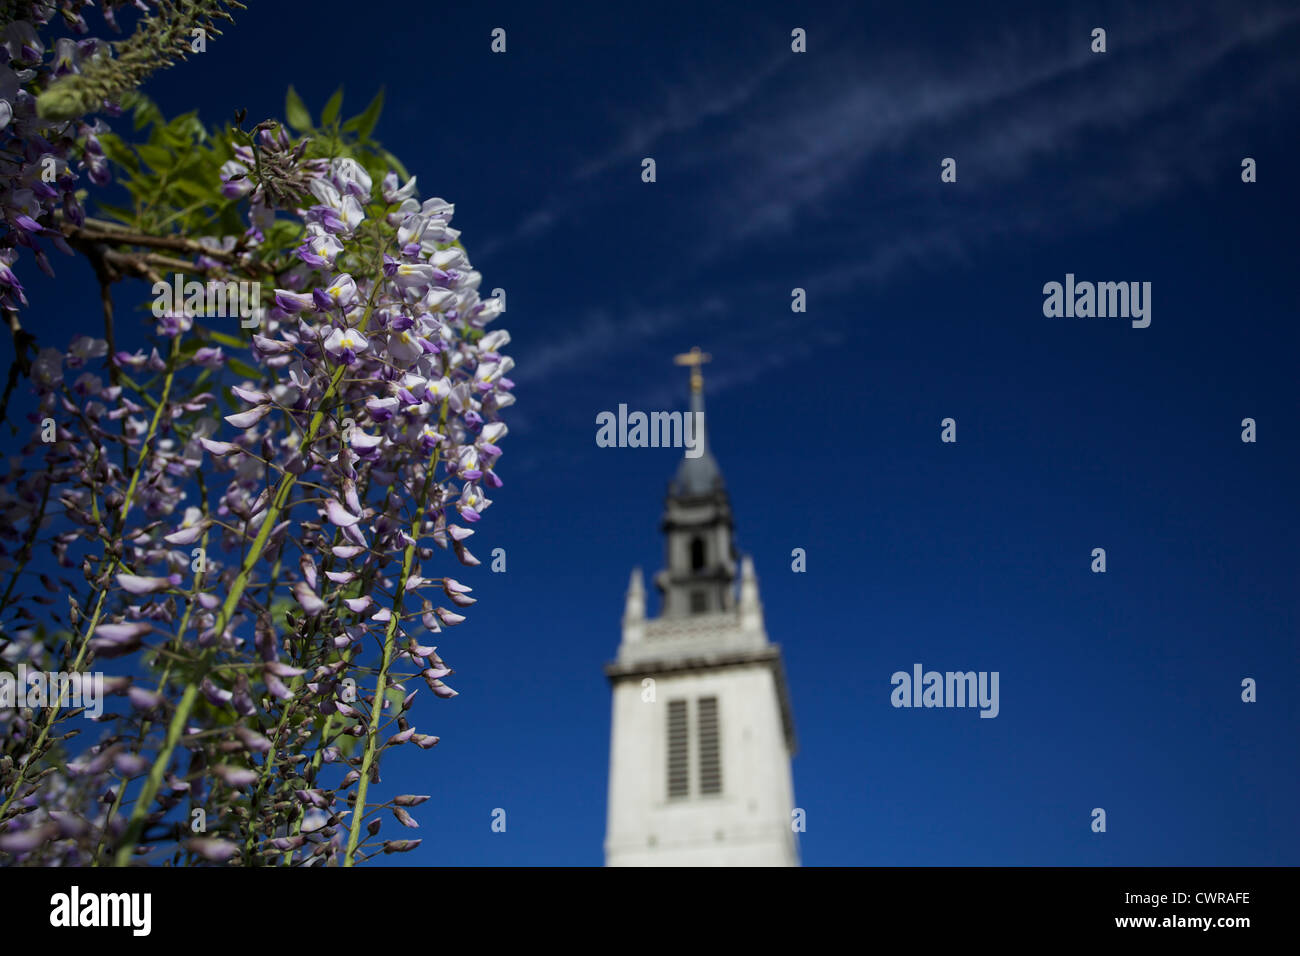 Church tower against a vivid blue sky with purple flowers in the foreground - Stock Image